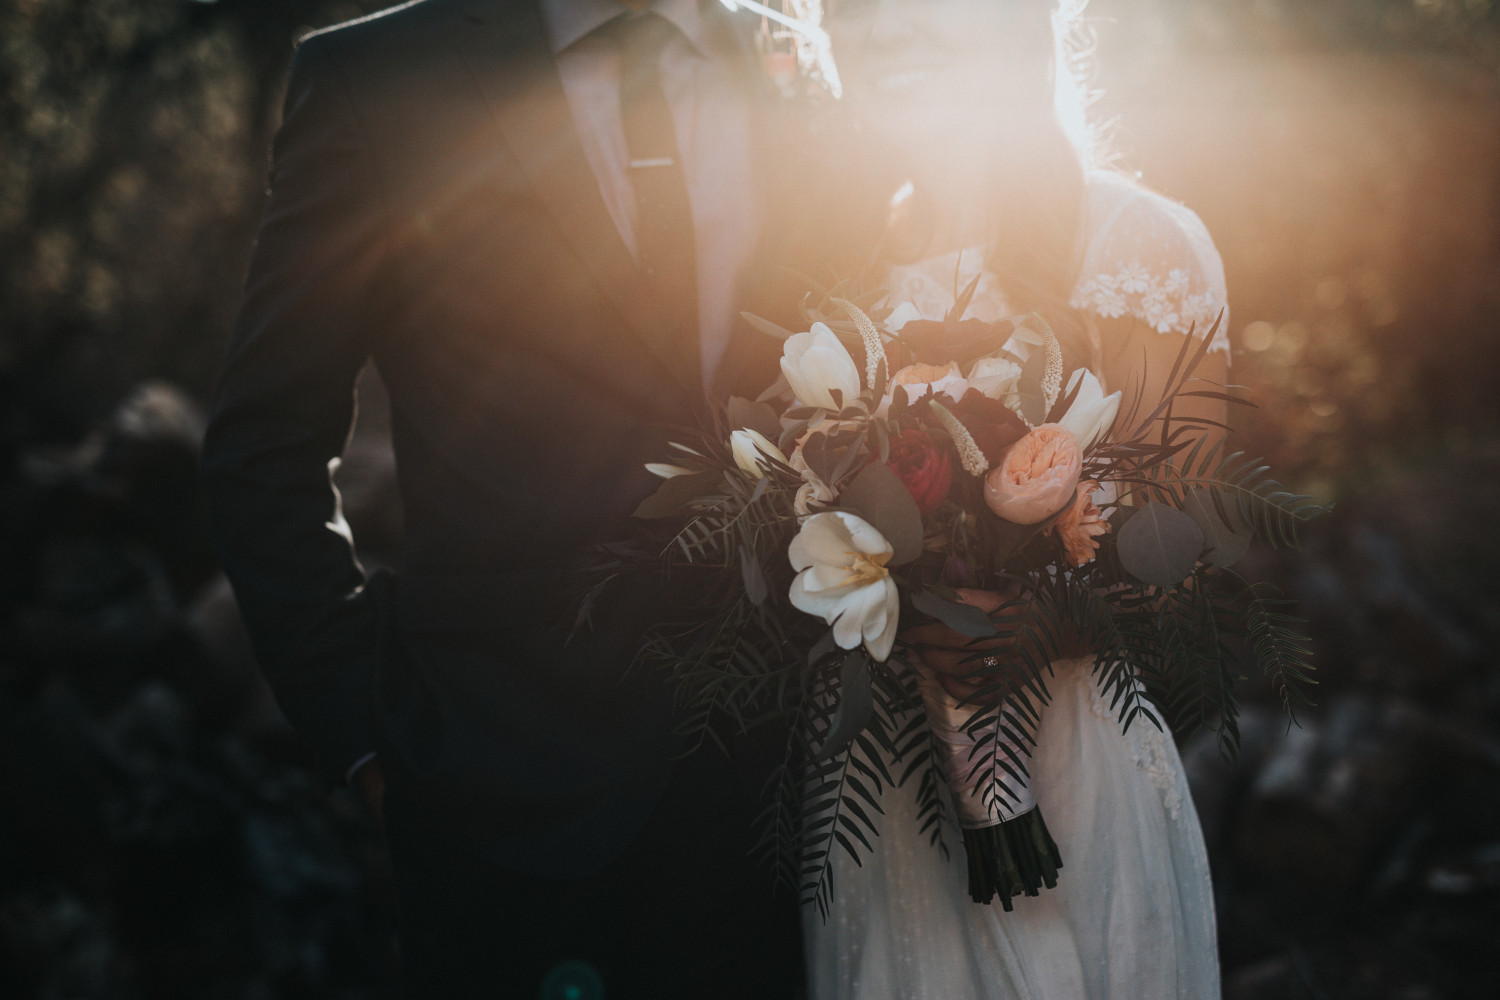 Image of a bride and groom holding a bouquet of flowers